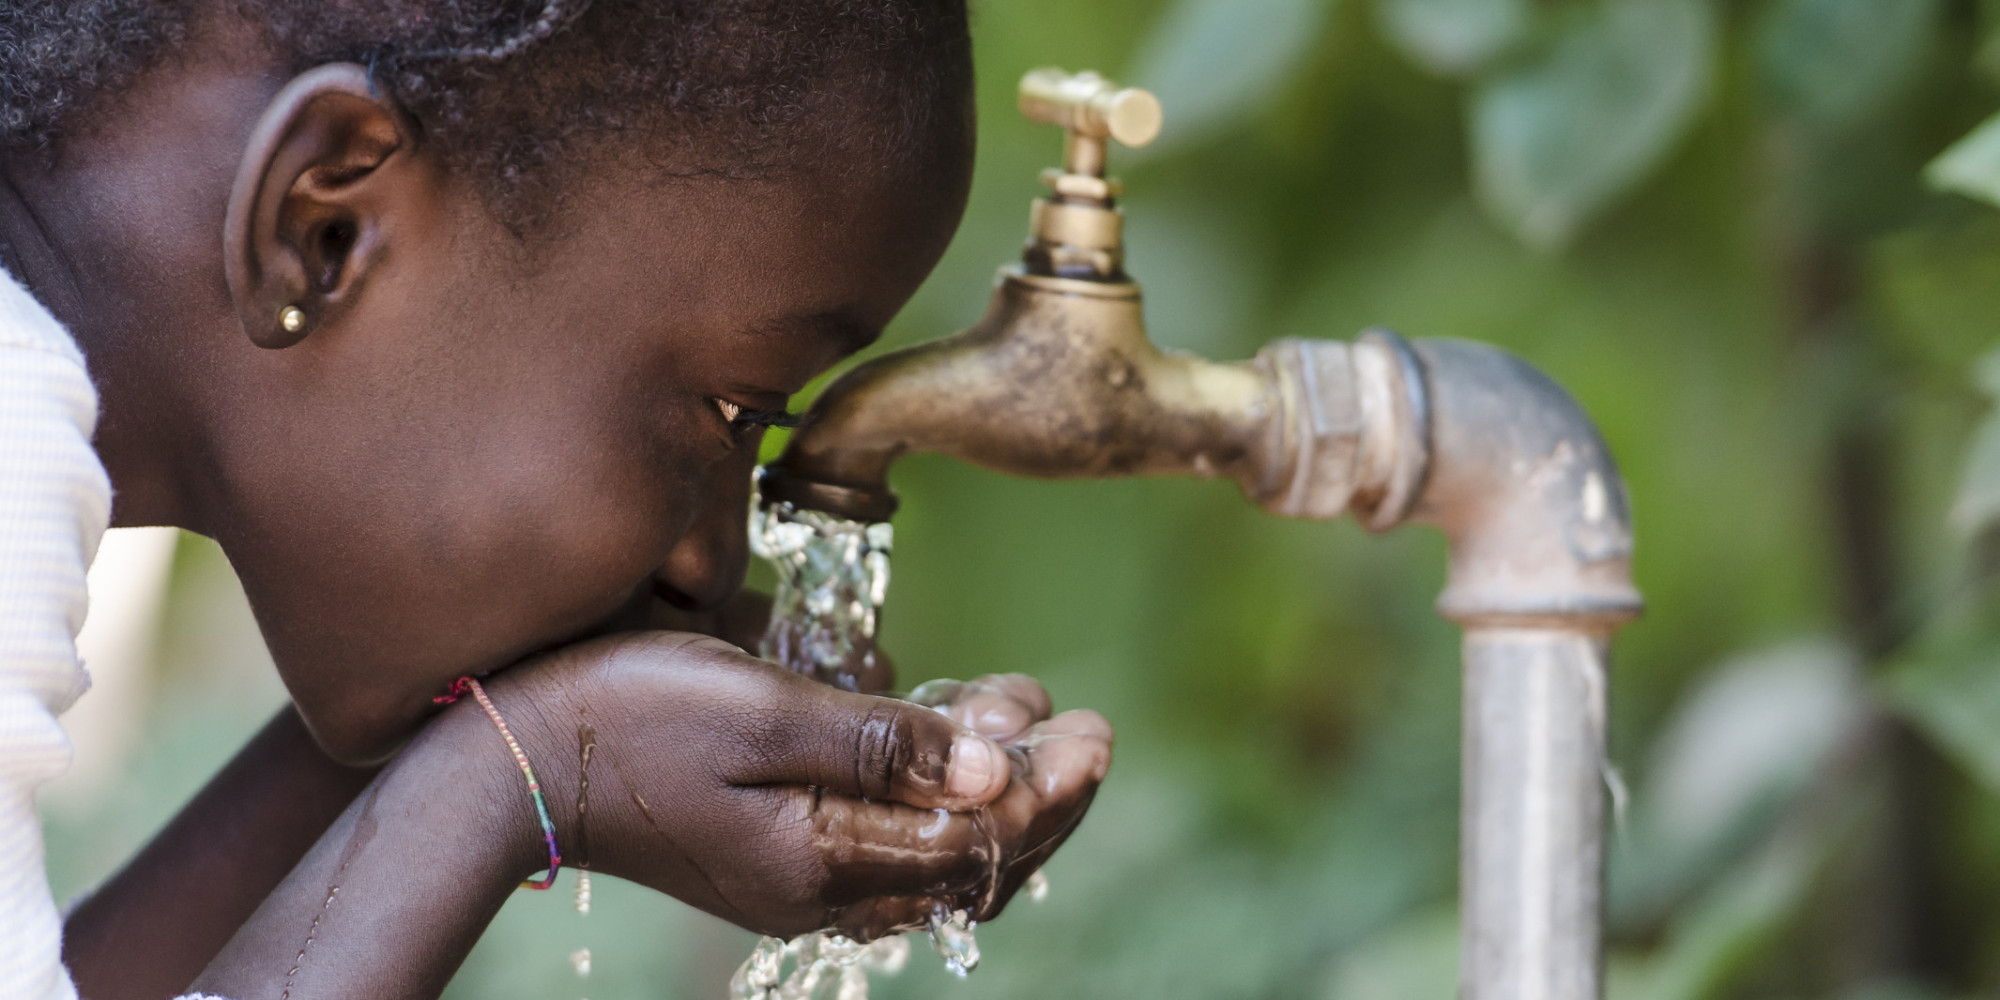 poverty in africa and water access Sub saharan africa have no access to sanitation, and 330 million people live  without access to safe water the poverty link to water, sanitation and hygiene is .